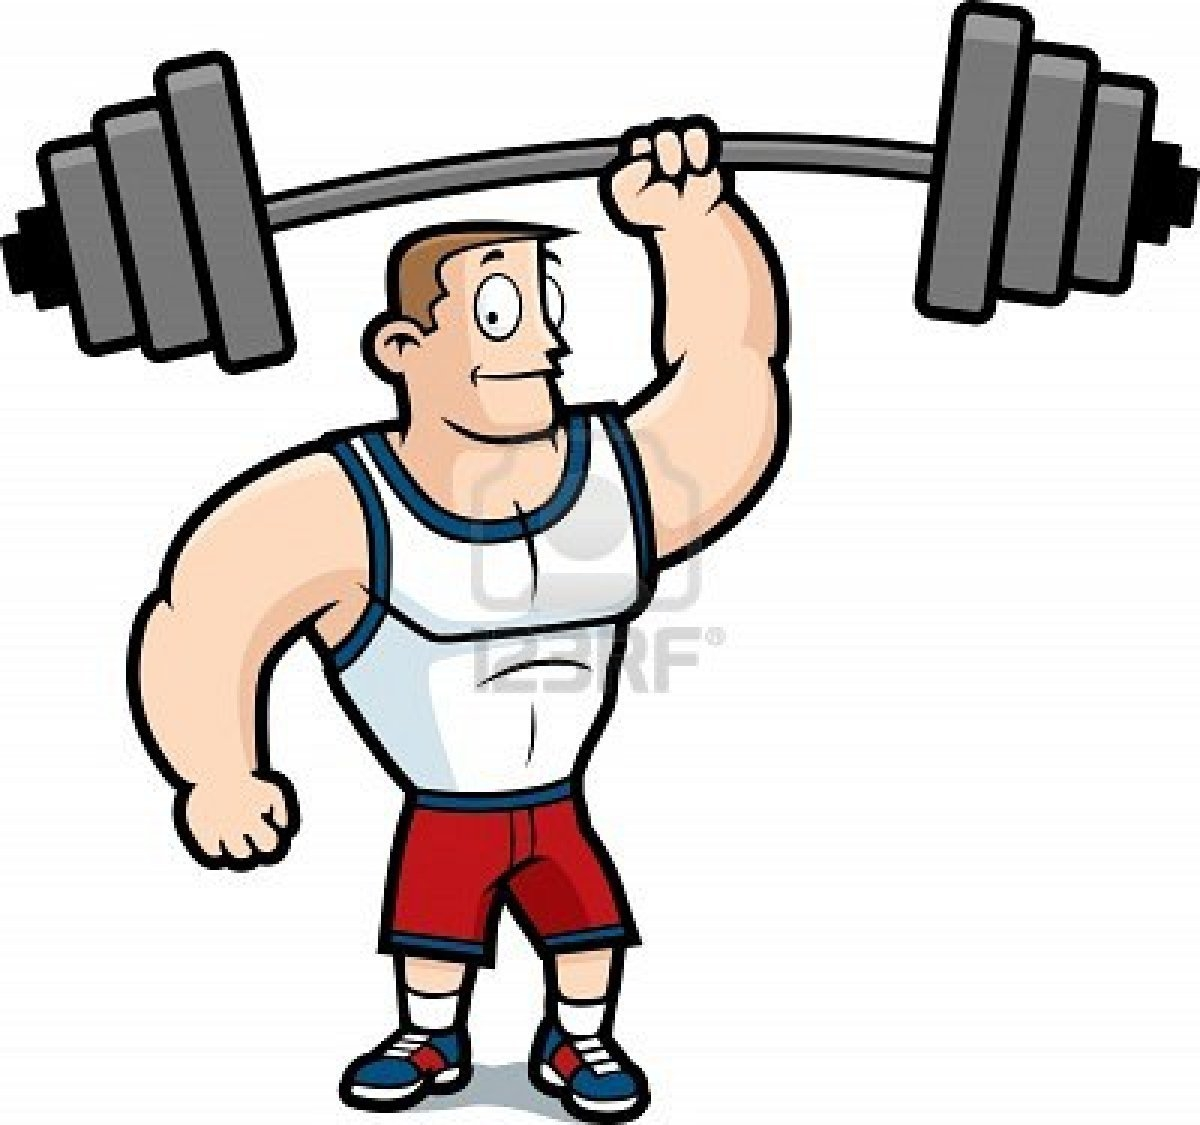 Bicep clipart strong guy, Bicep strong guy Transparent FREE.